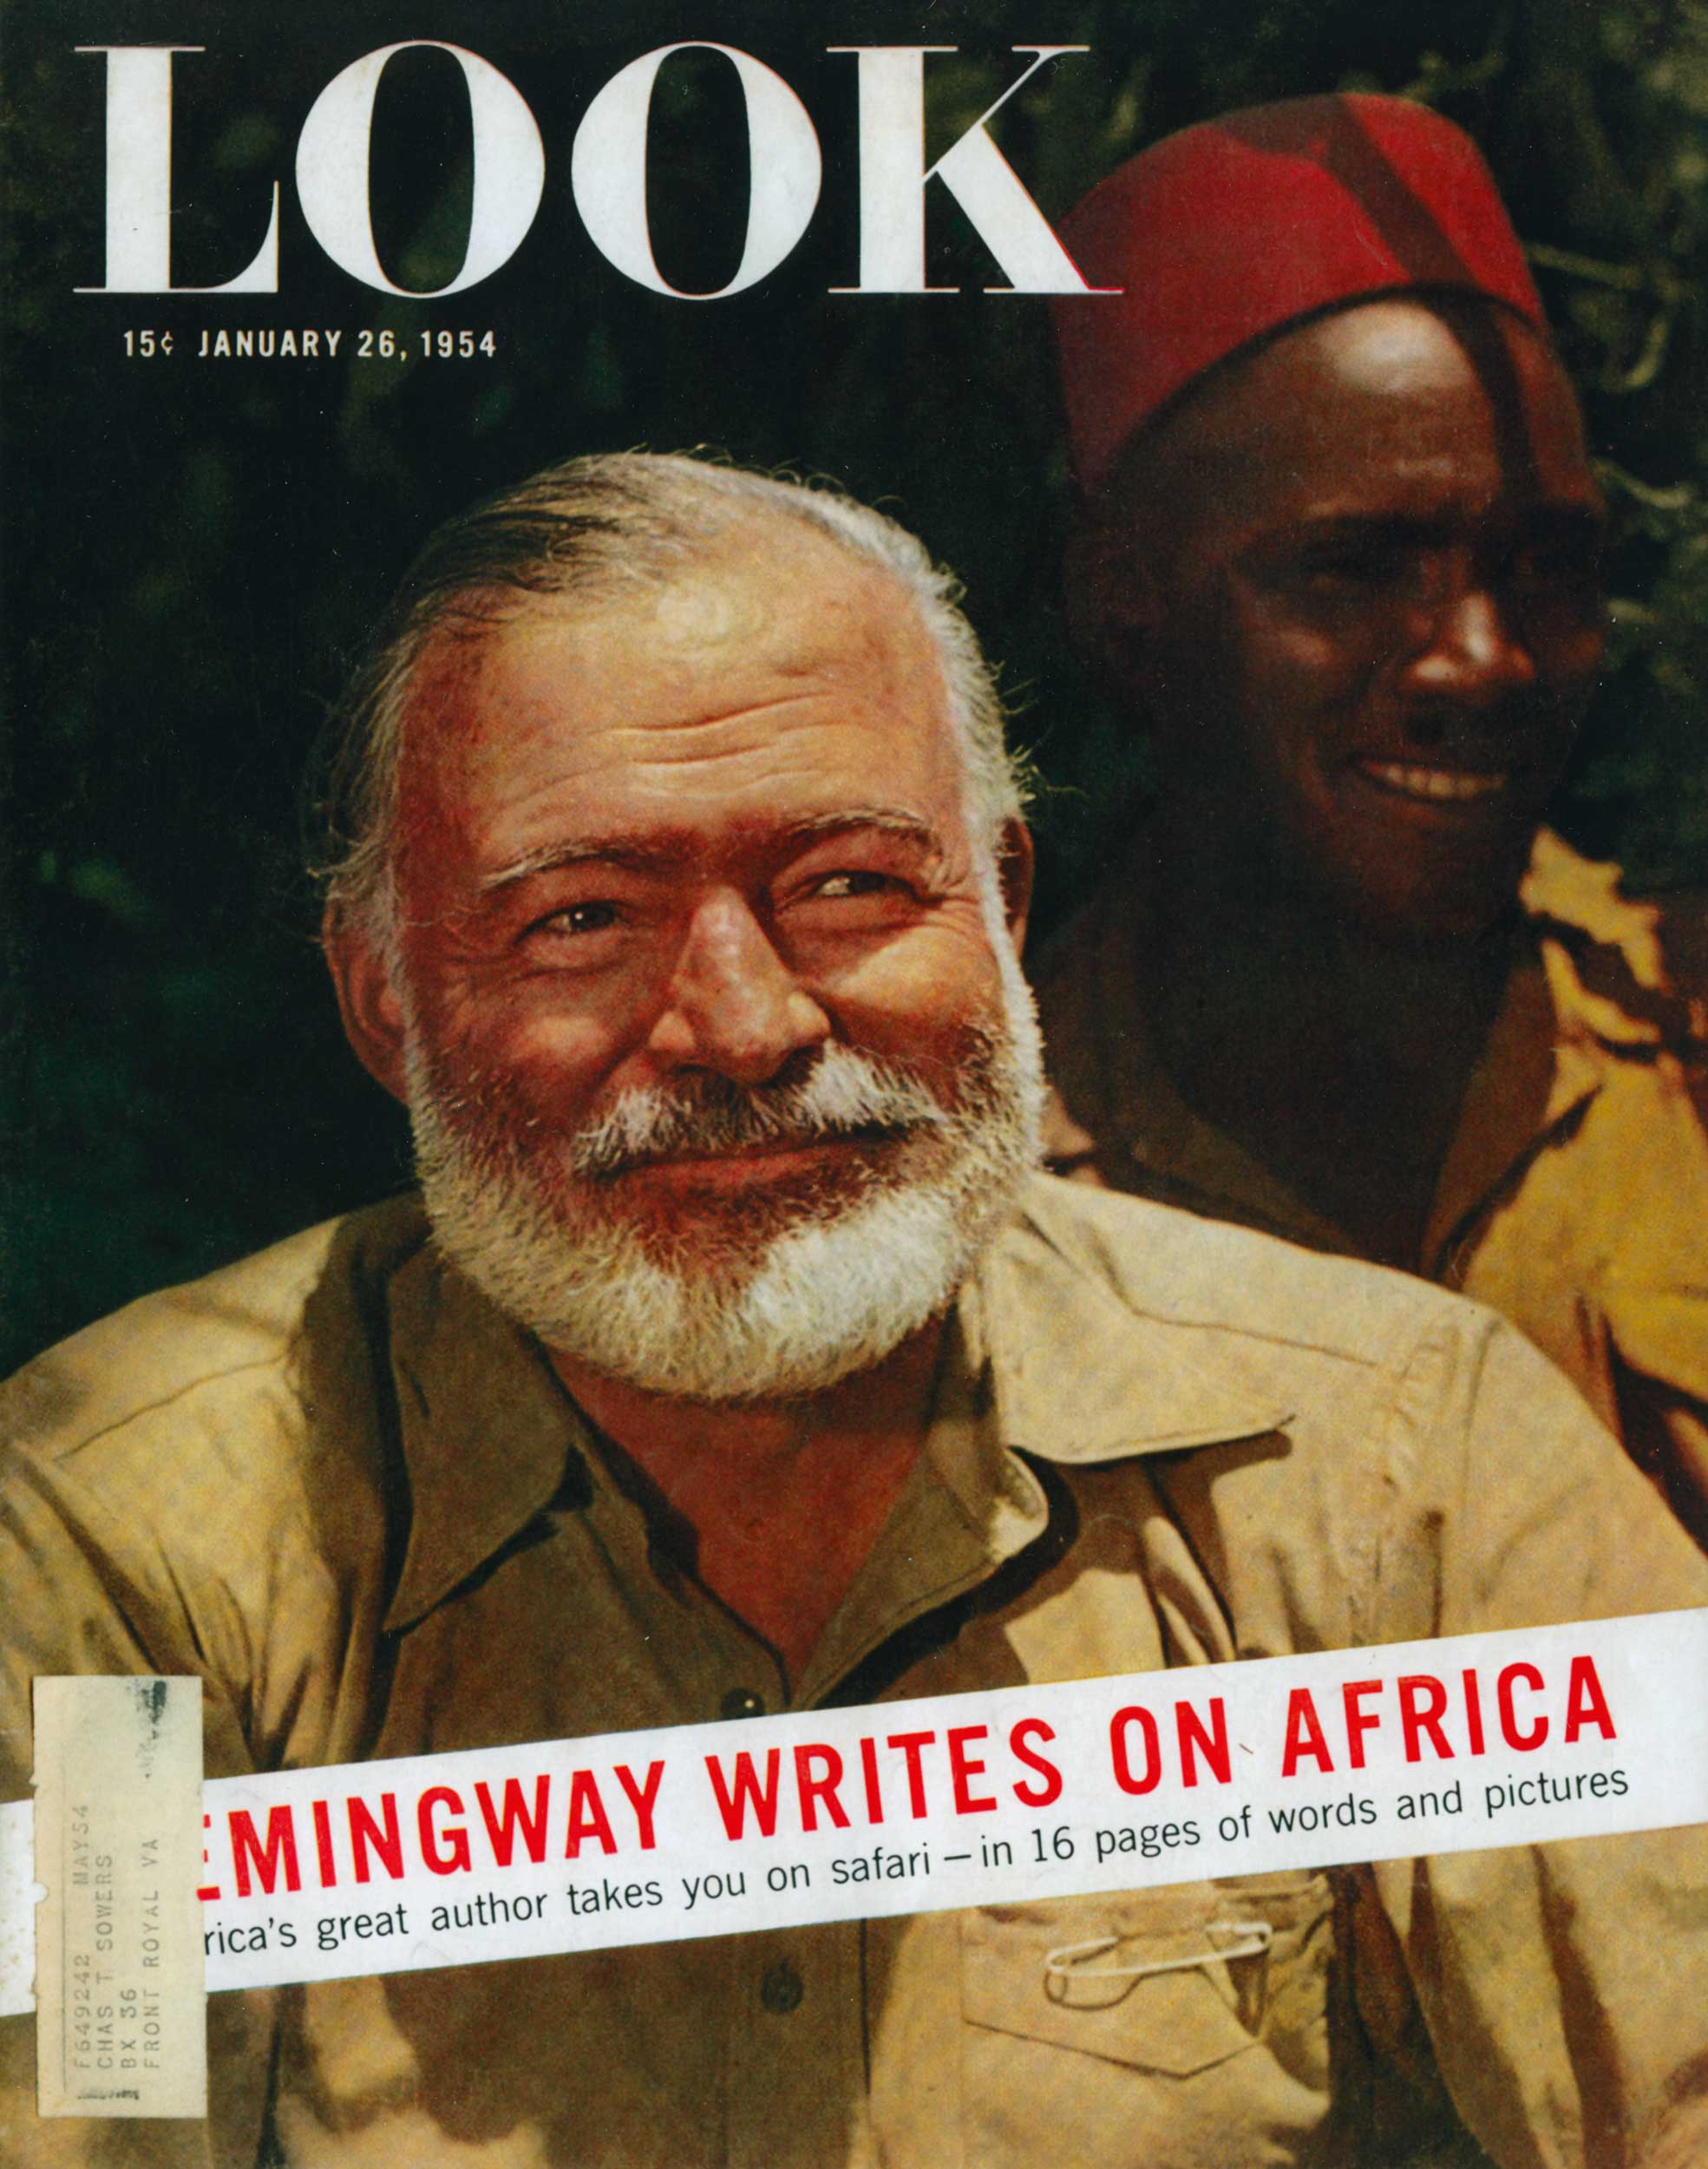 HEMINGWAY WRITES ON AFRICA. LOOK MAGAZINE 1954. / Westley Richards